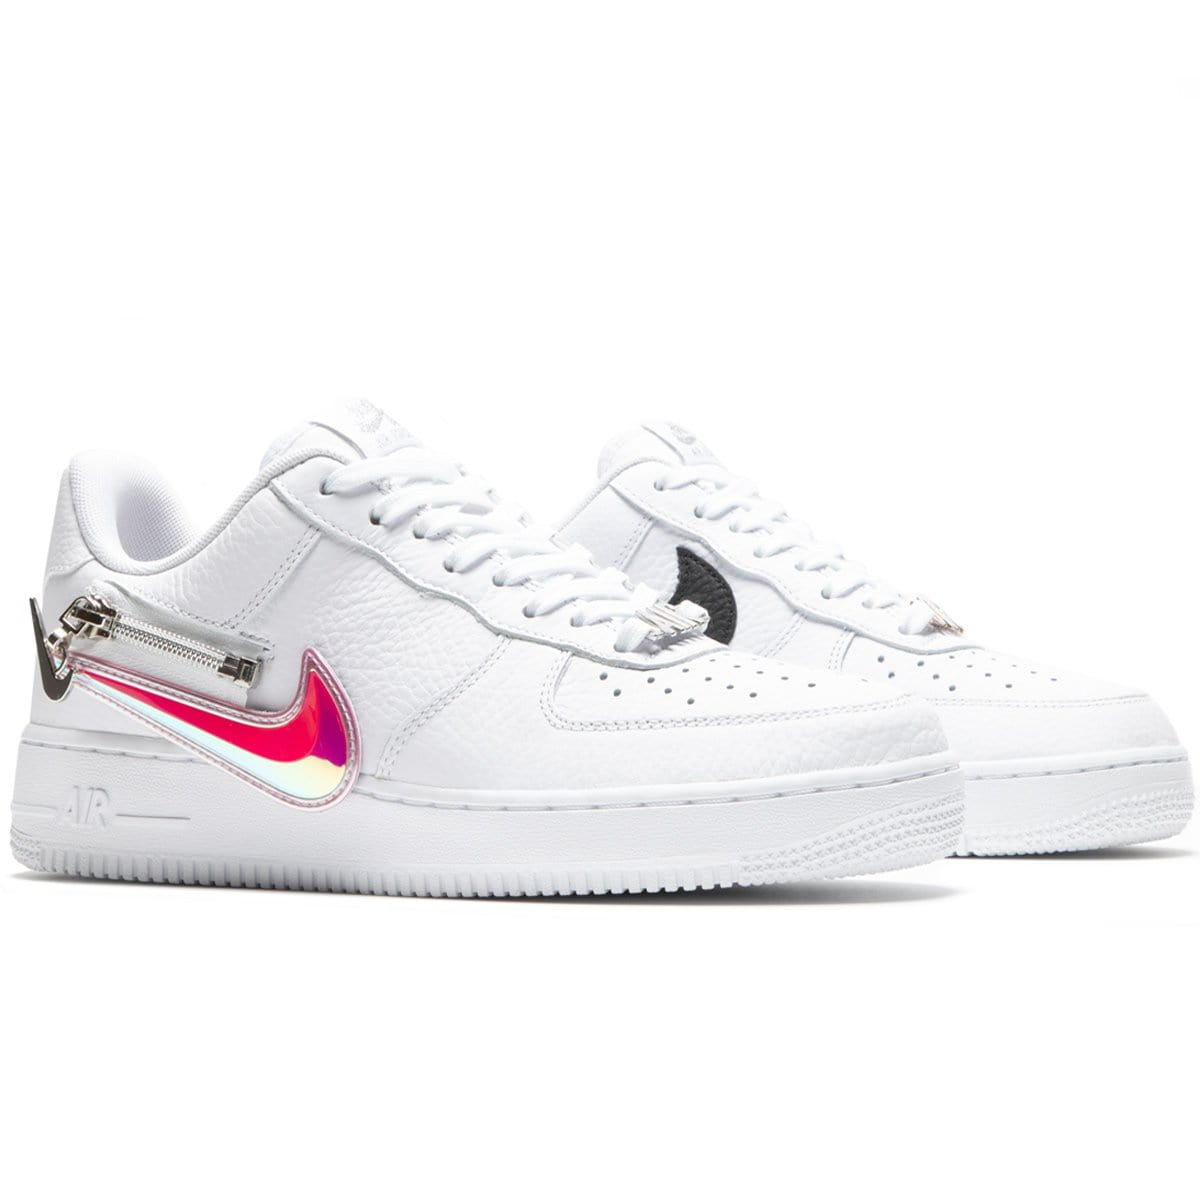 Nike Shoes AIR FORCE 1 '07 PRM